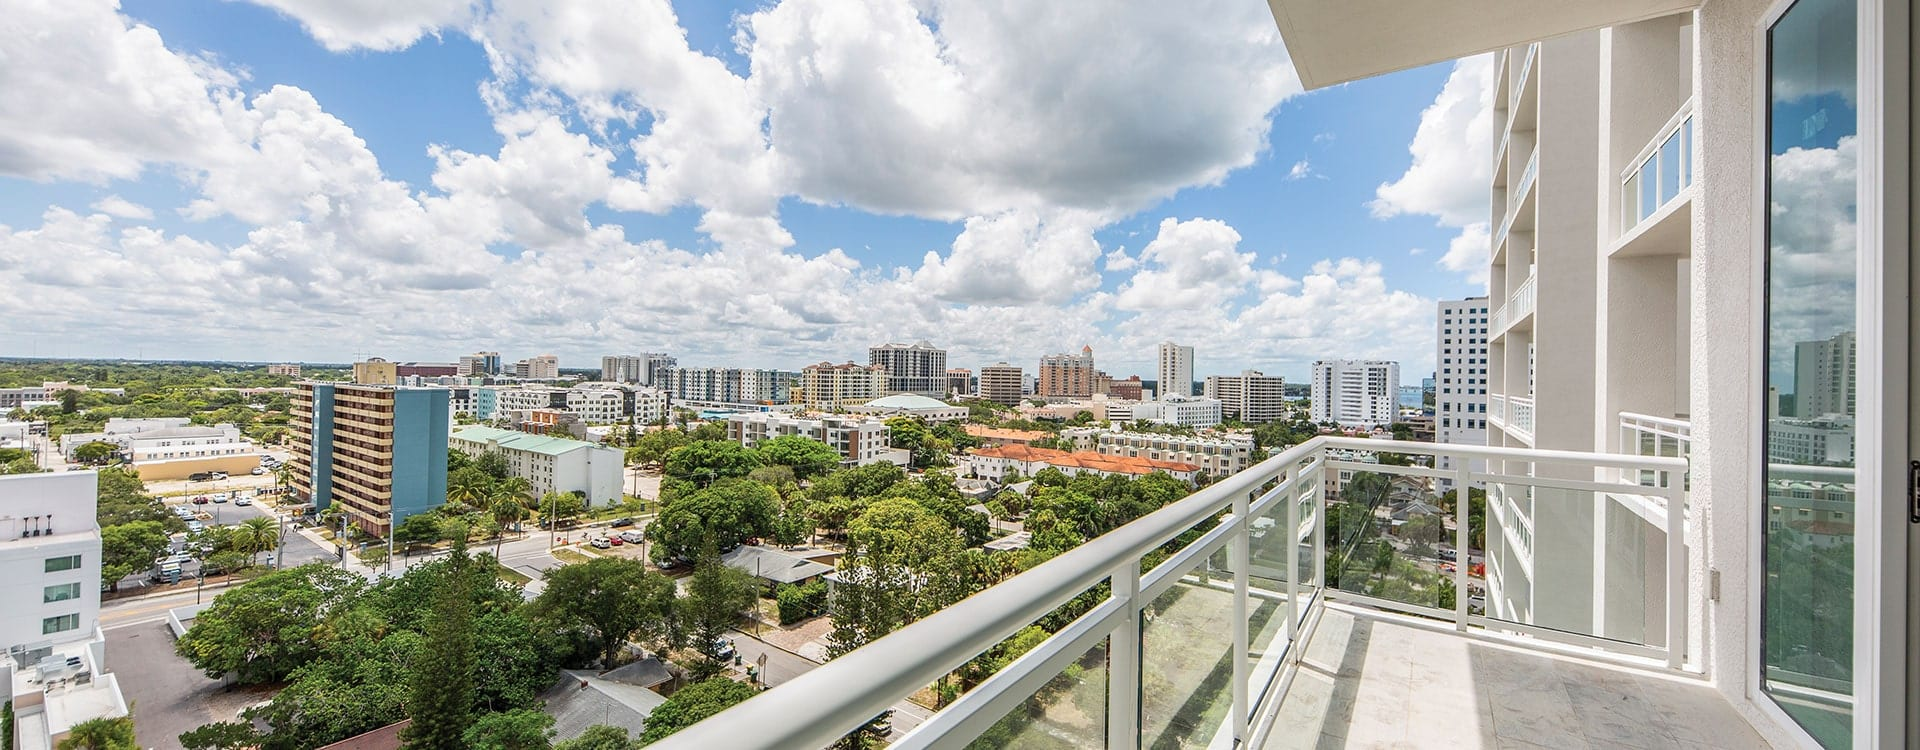 Blvd Residence 1102 Terrace looking out to downtown sarasota